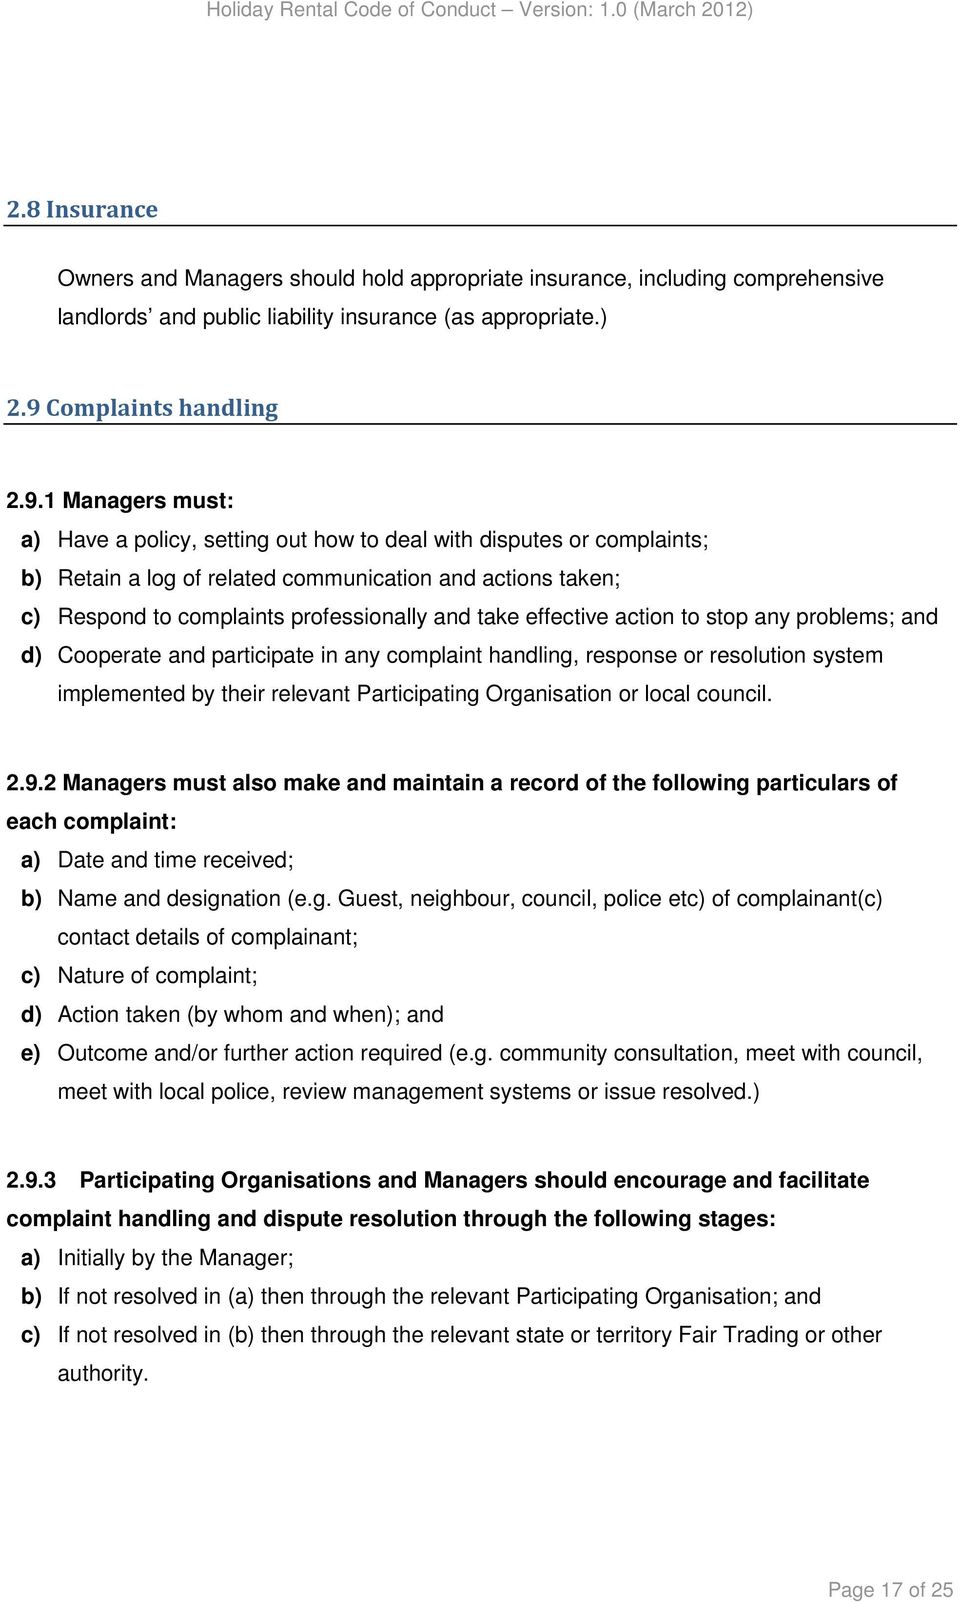 1 Managers must: a) Have a policy, setting out how to deal with disputes or complaints; b) Retain a log of related communication and actions taken; c) Respond to complaints professionally and take